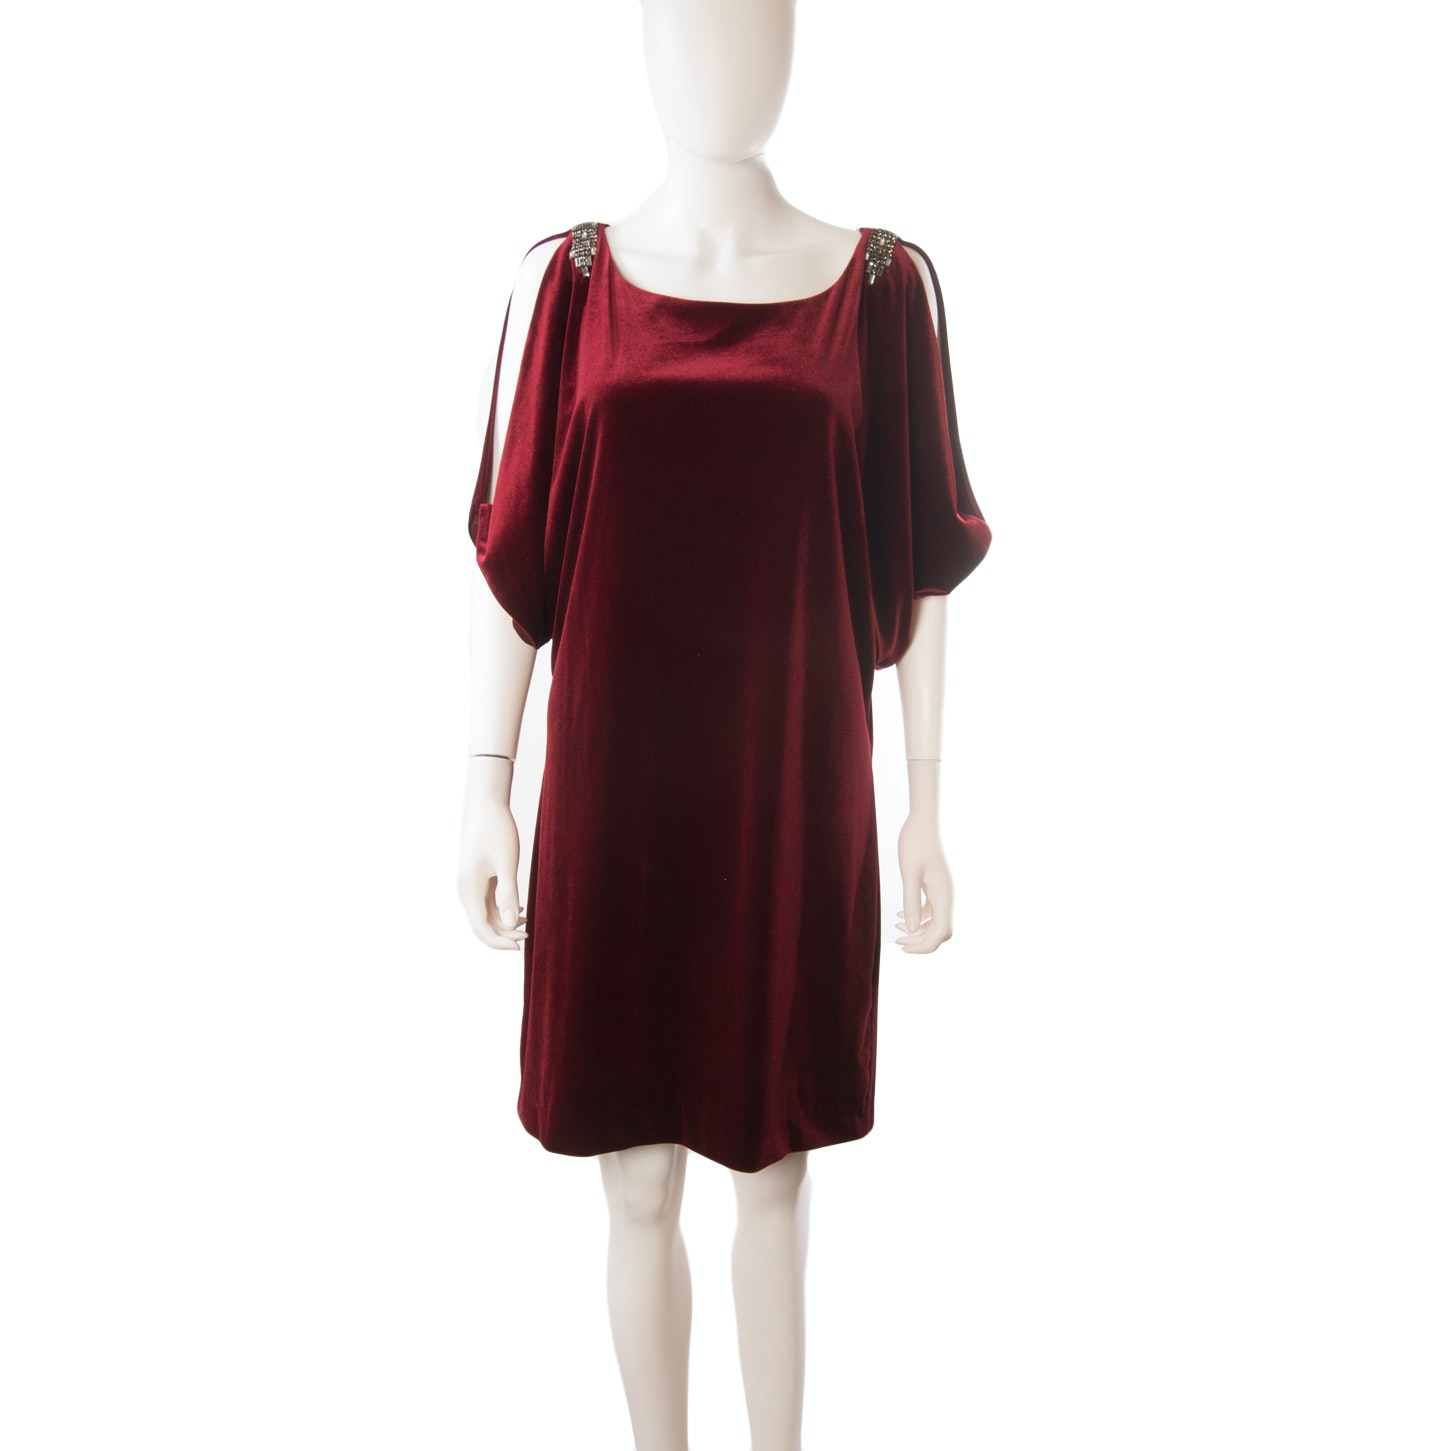 Aidan Mattox Velvet Cold Shoulder Cocktail Dress Embellished with Rhinestones